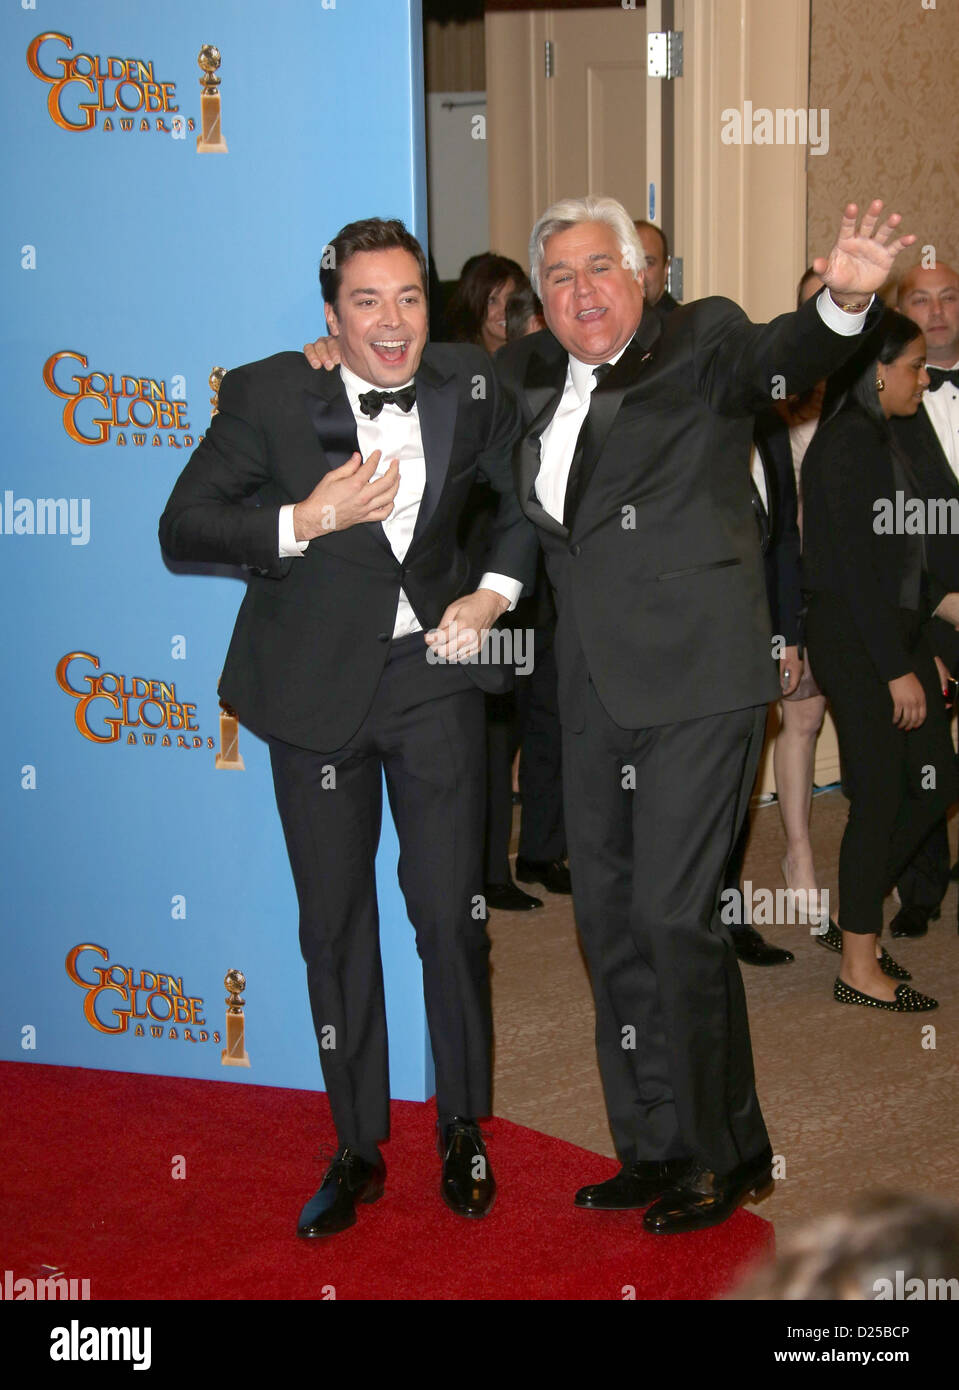 TV personalities Jay Leno and Jimmy Fallon (l) pose in the photo press room of the 70th Annual Golden Globe Awards - Stock Image